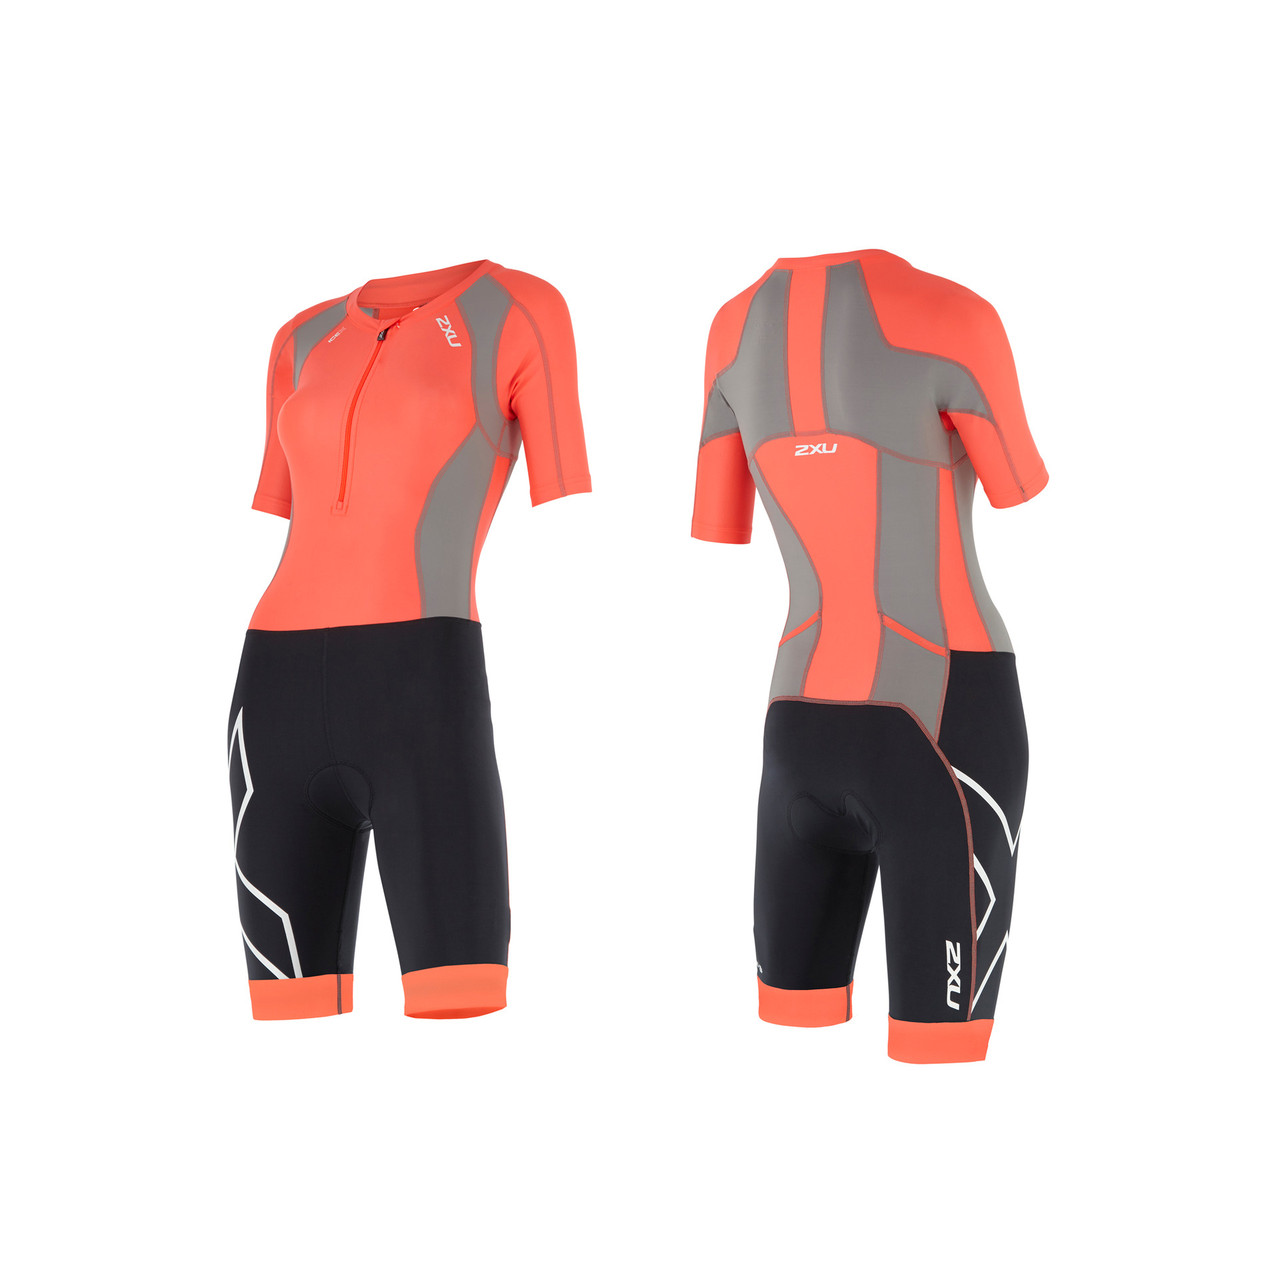 b7a7bceff4d 2XU Women's Compression Sleeved Tri Suit